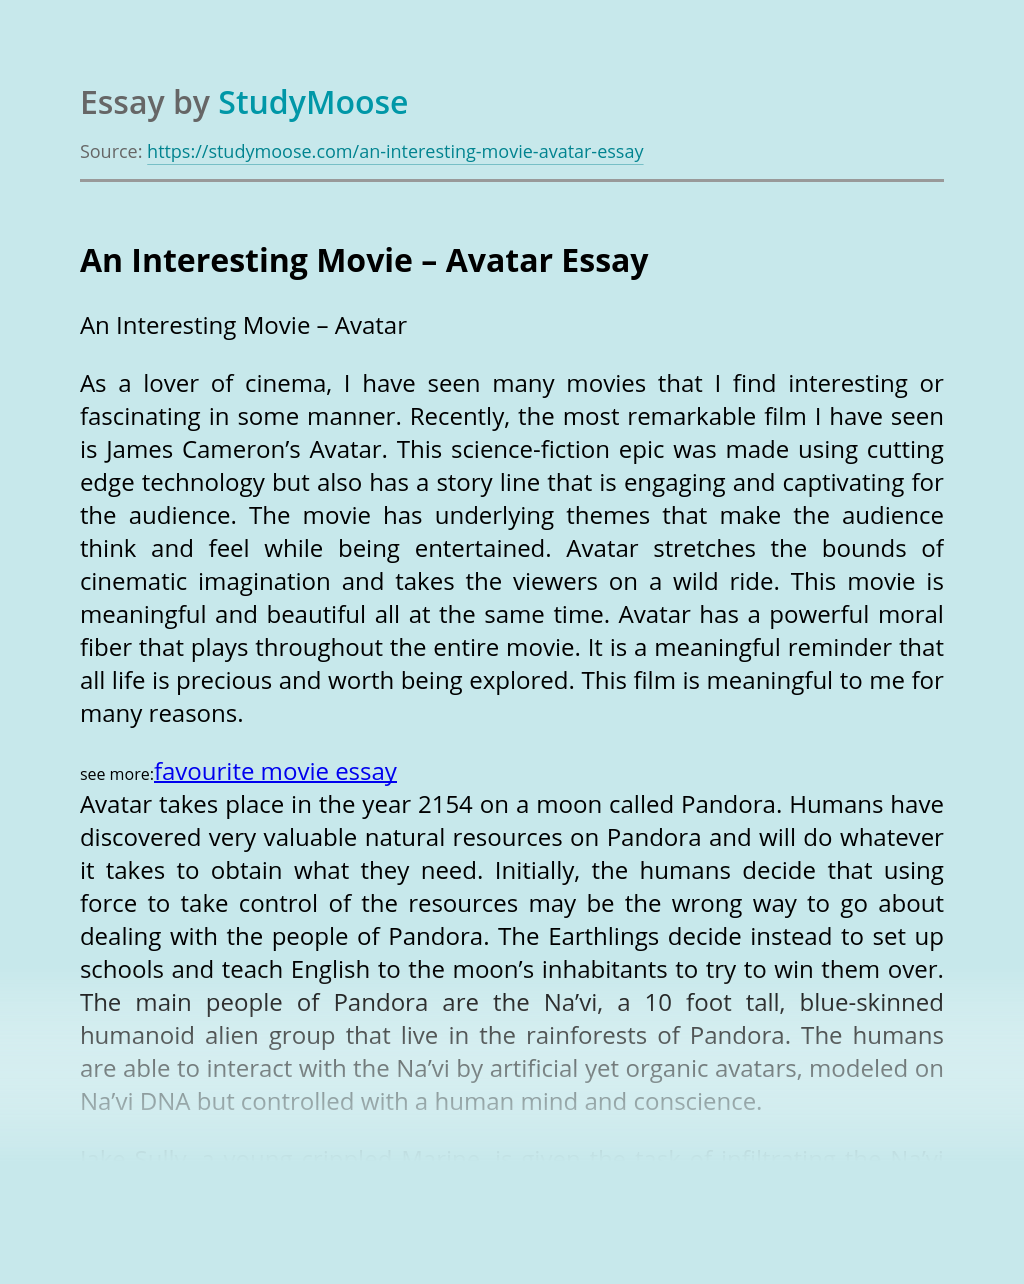 An Interesting Movie – Avatar